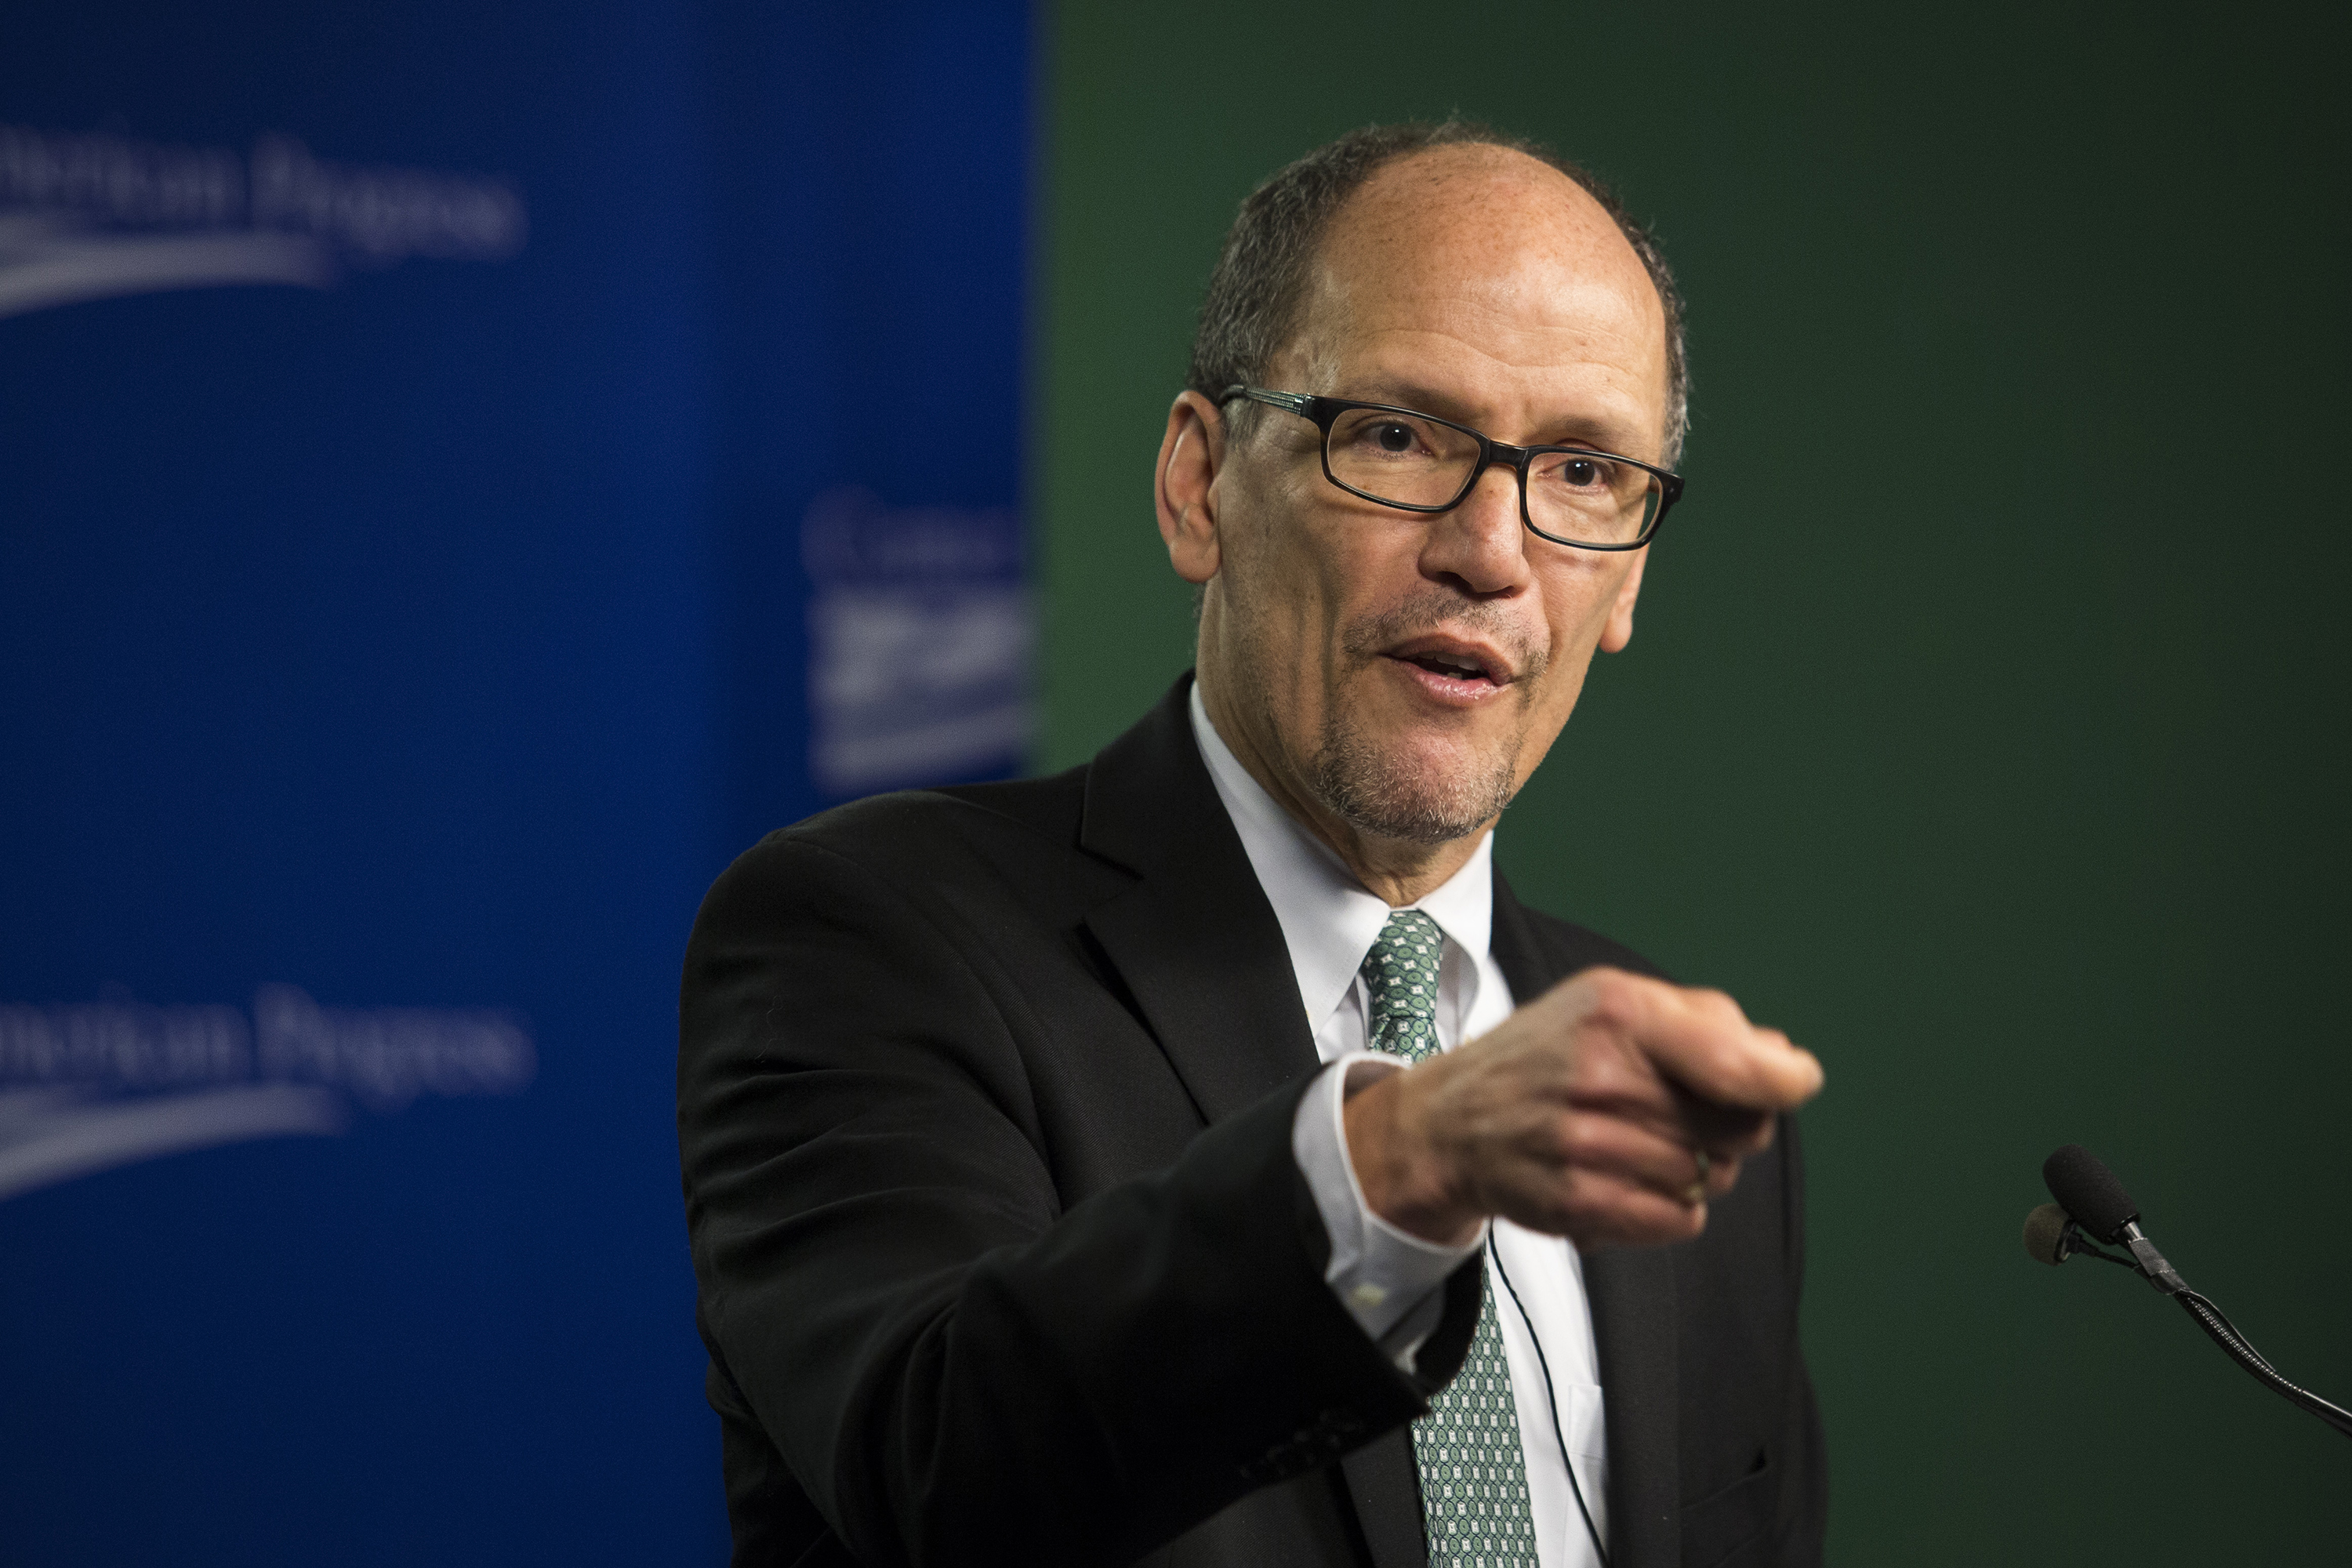 Thomas Perez, U.S. Secretary of Labor under President Obama, is in the running to be National Democratic chairman. (Bloomberg News)